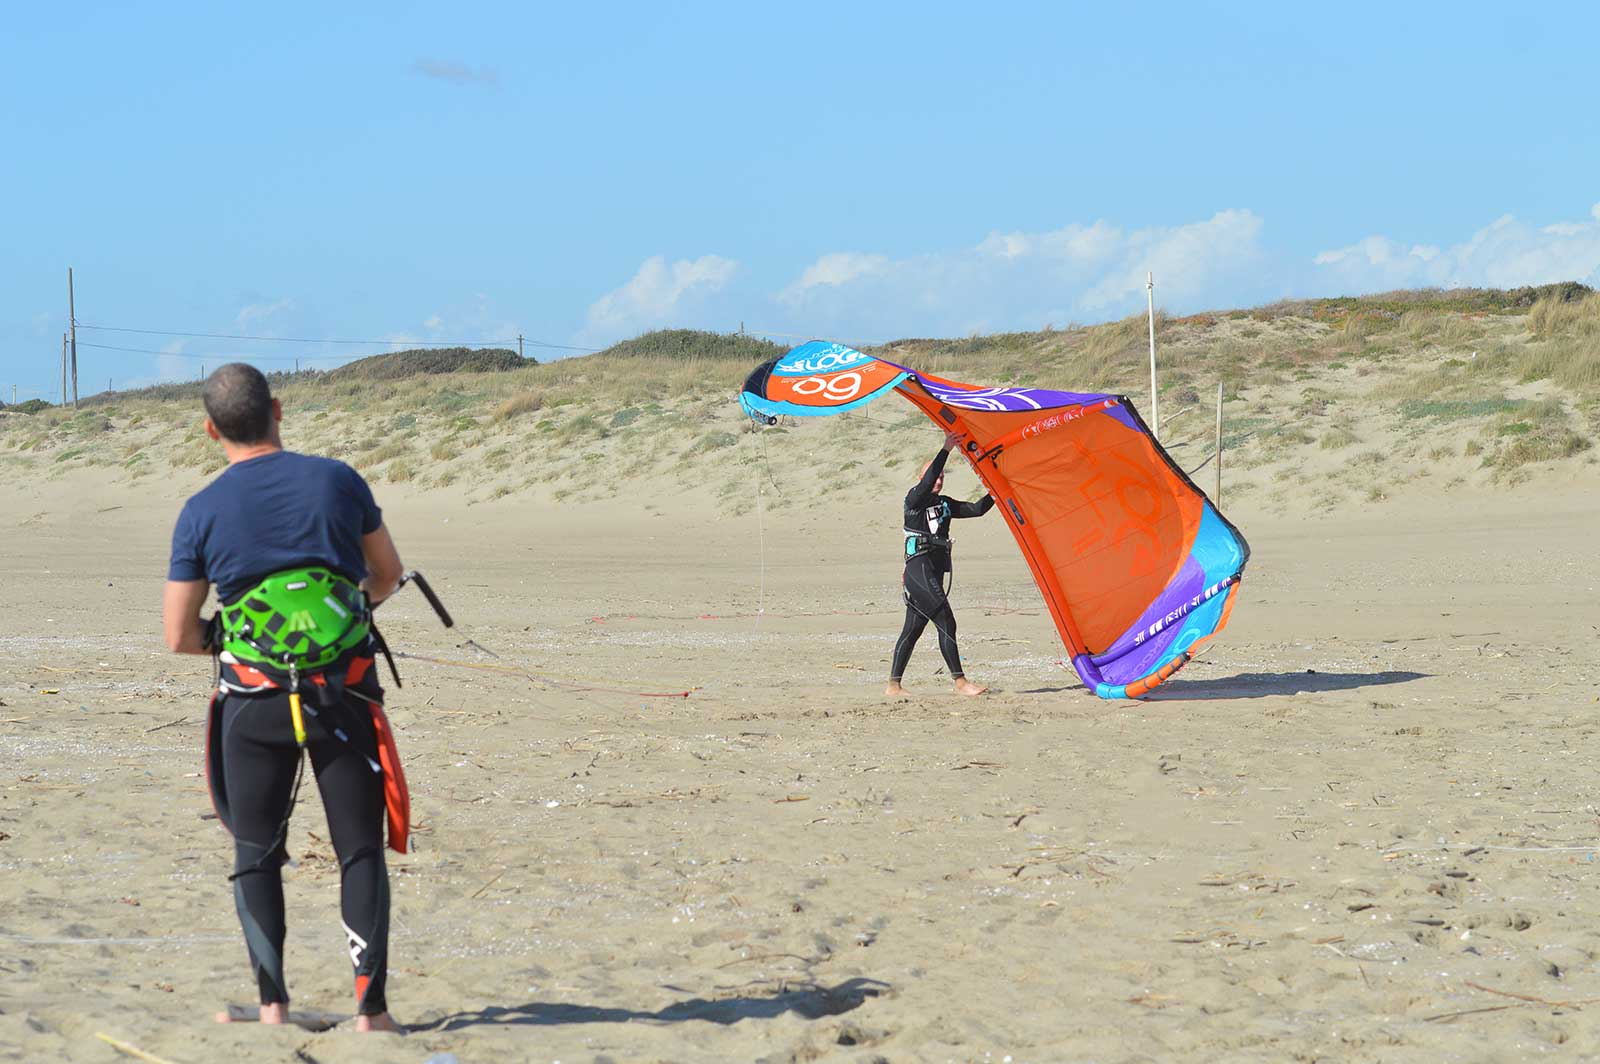 lancio kite decollo